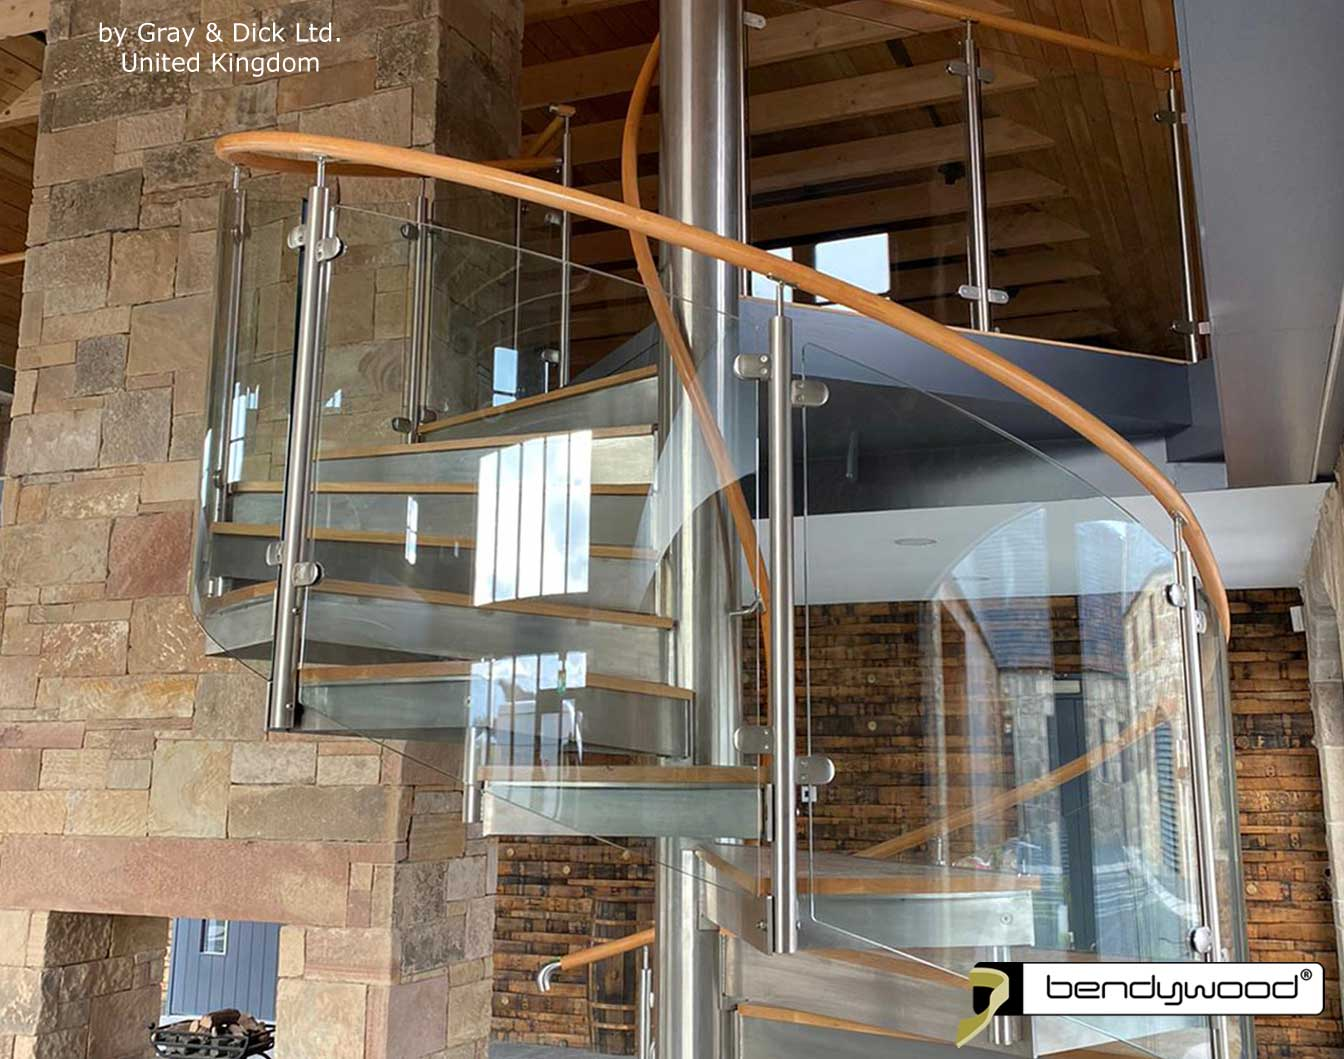 Bending wood Bendywood® - curved solid wooden handrail on glass railing